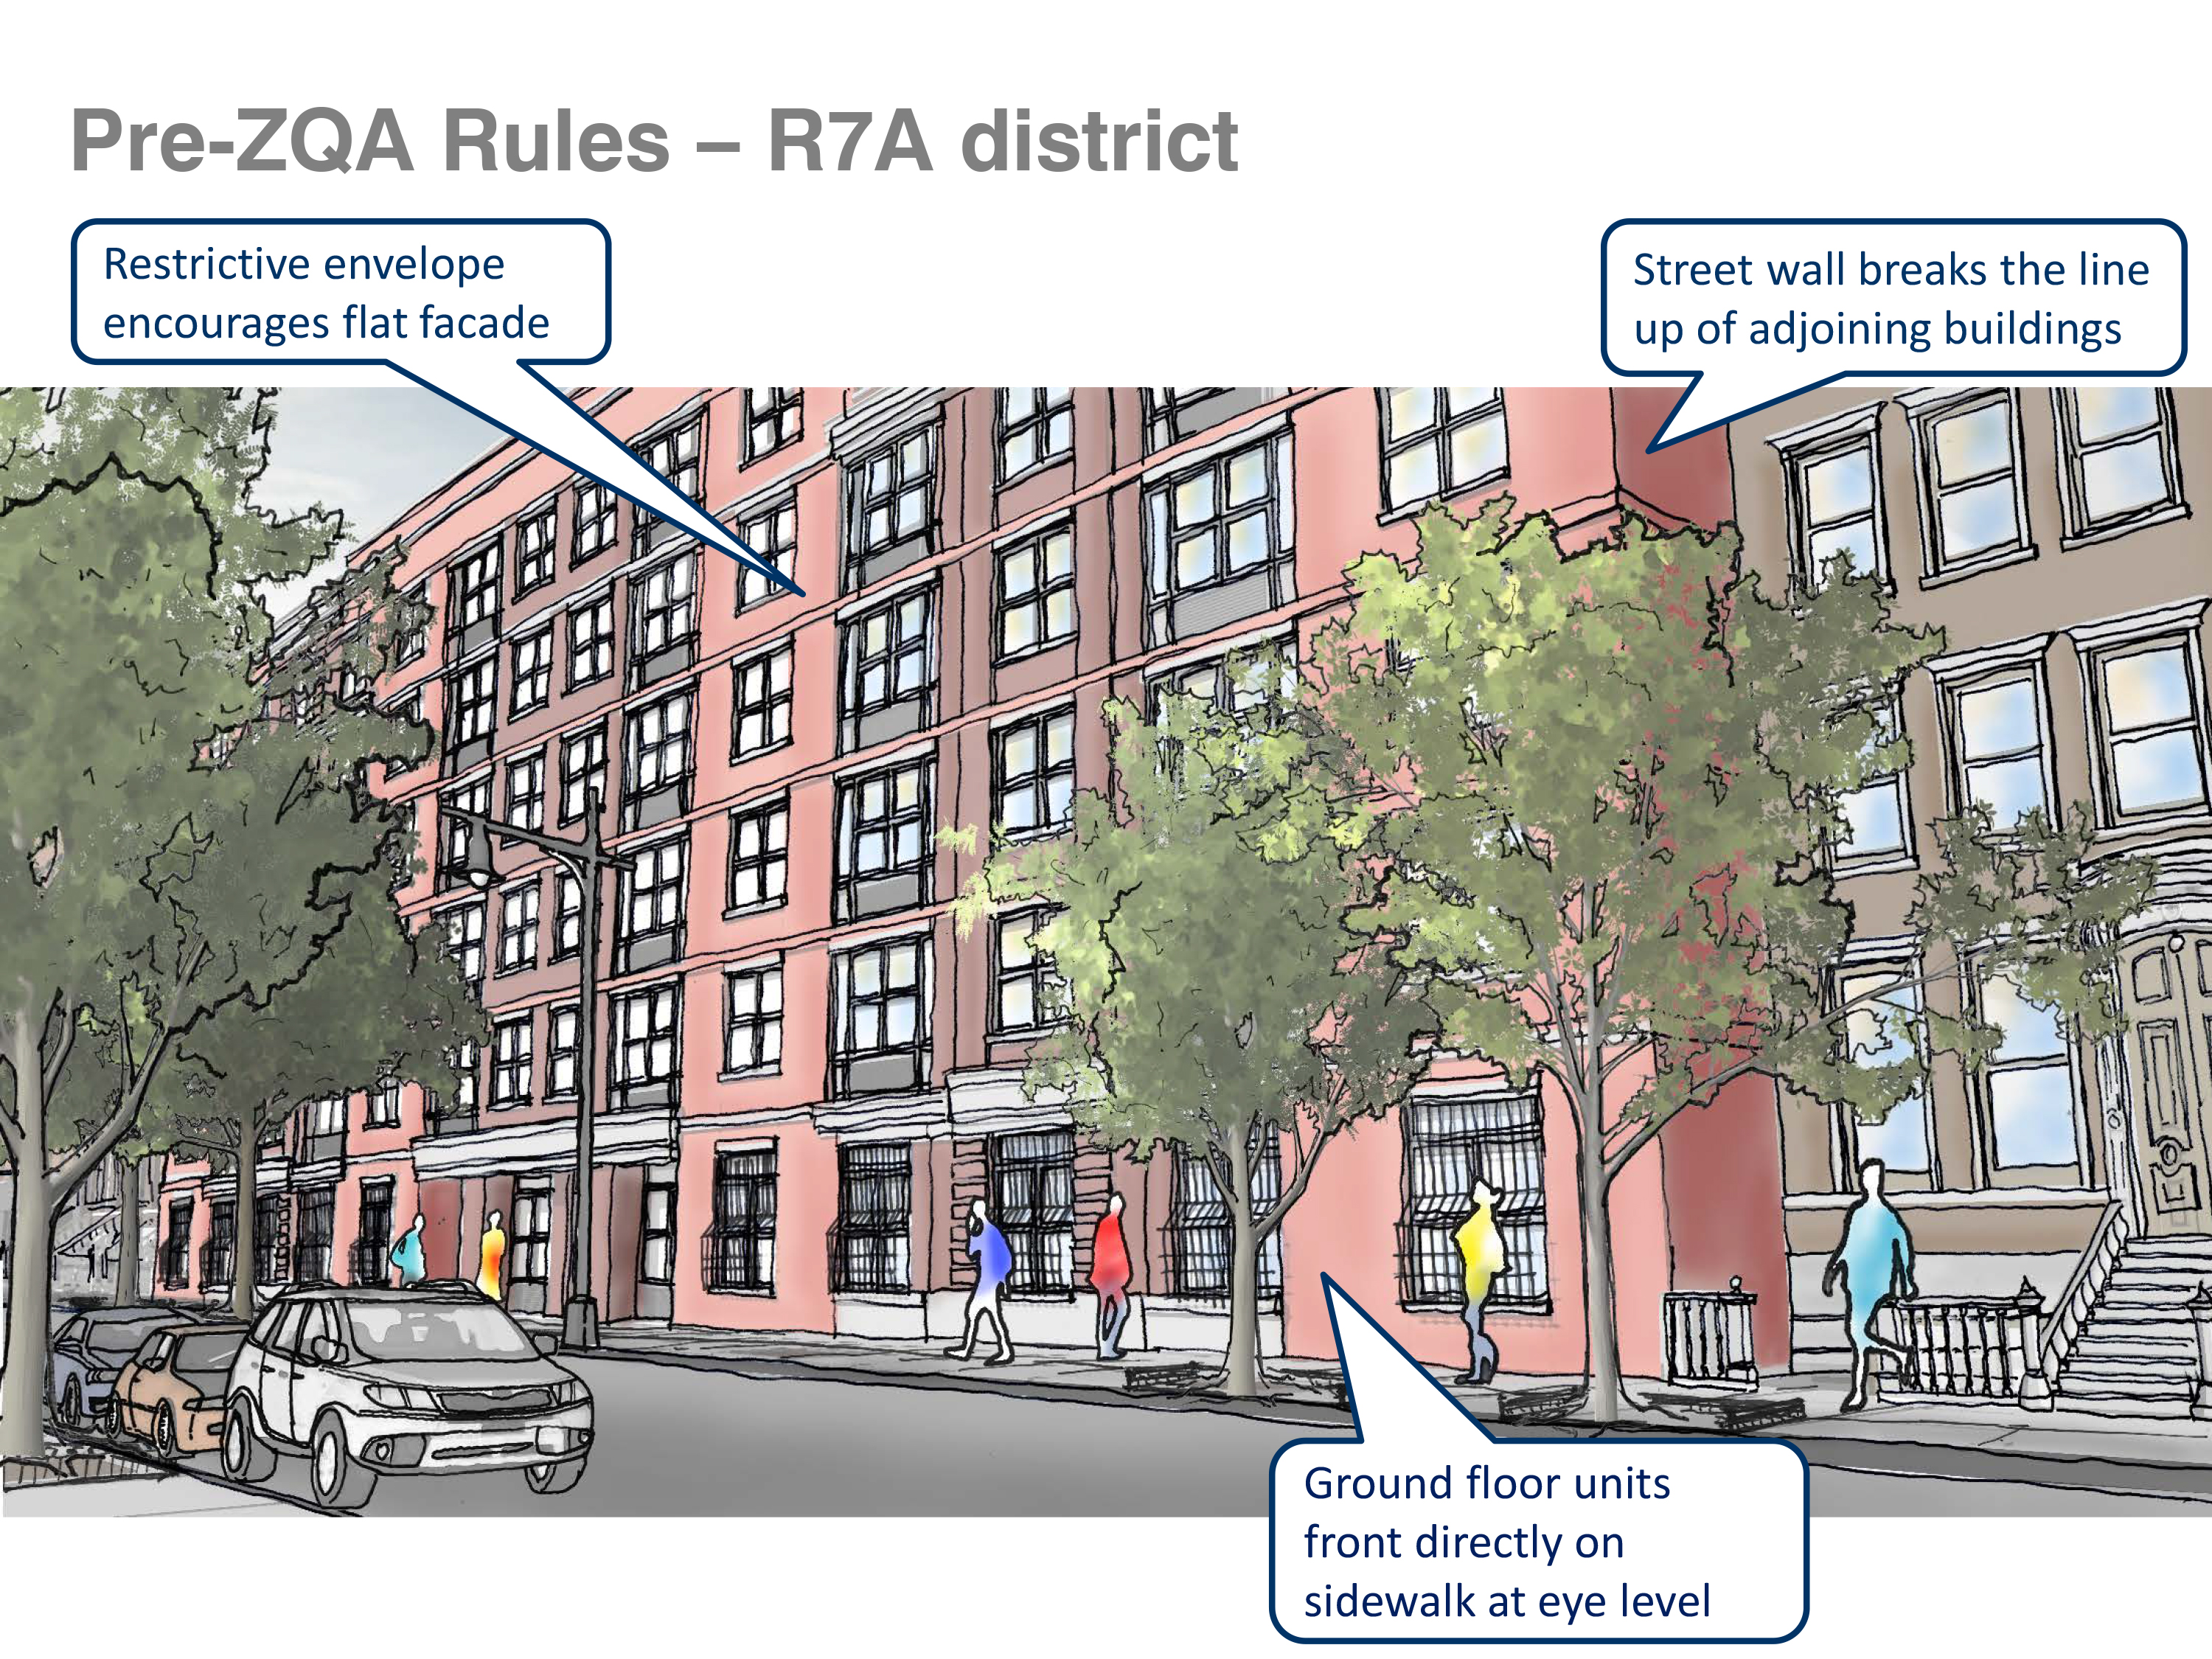 Pre-ZQA Rules - R7A District